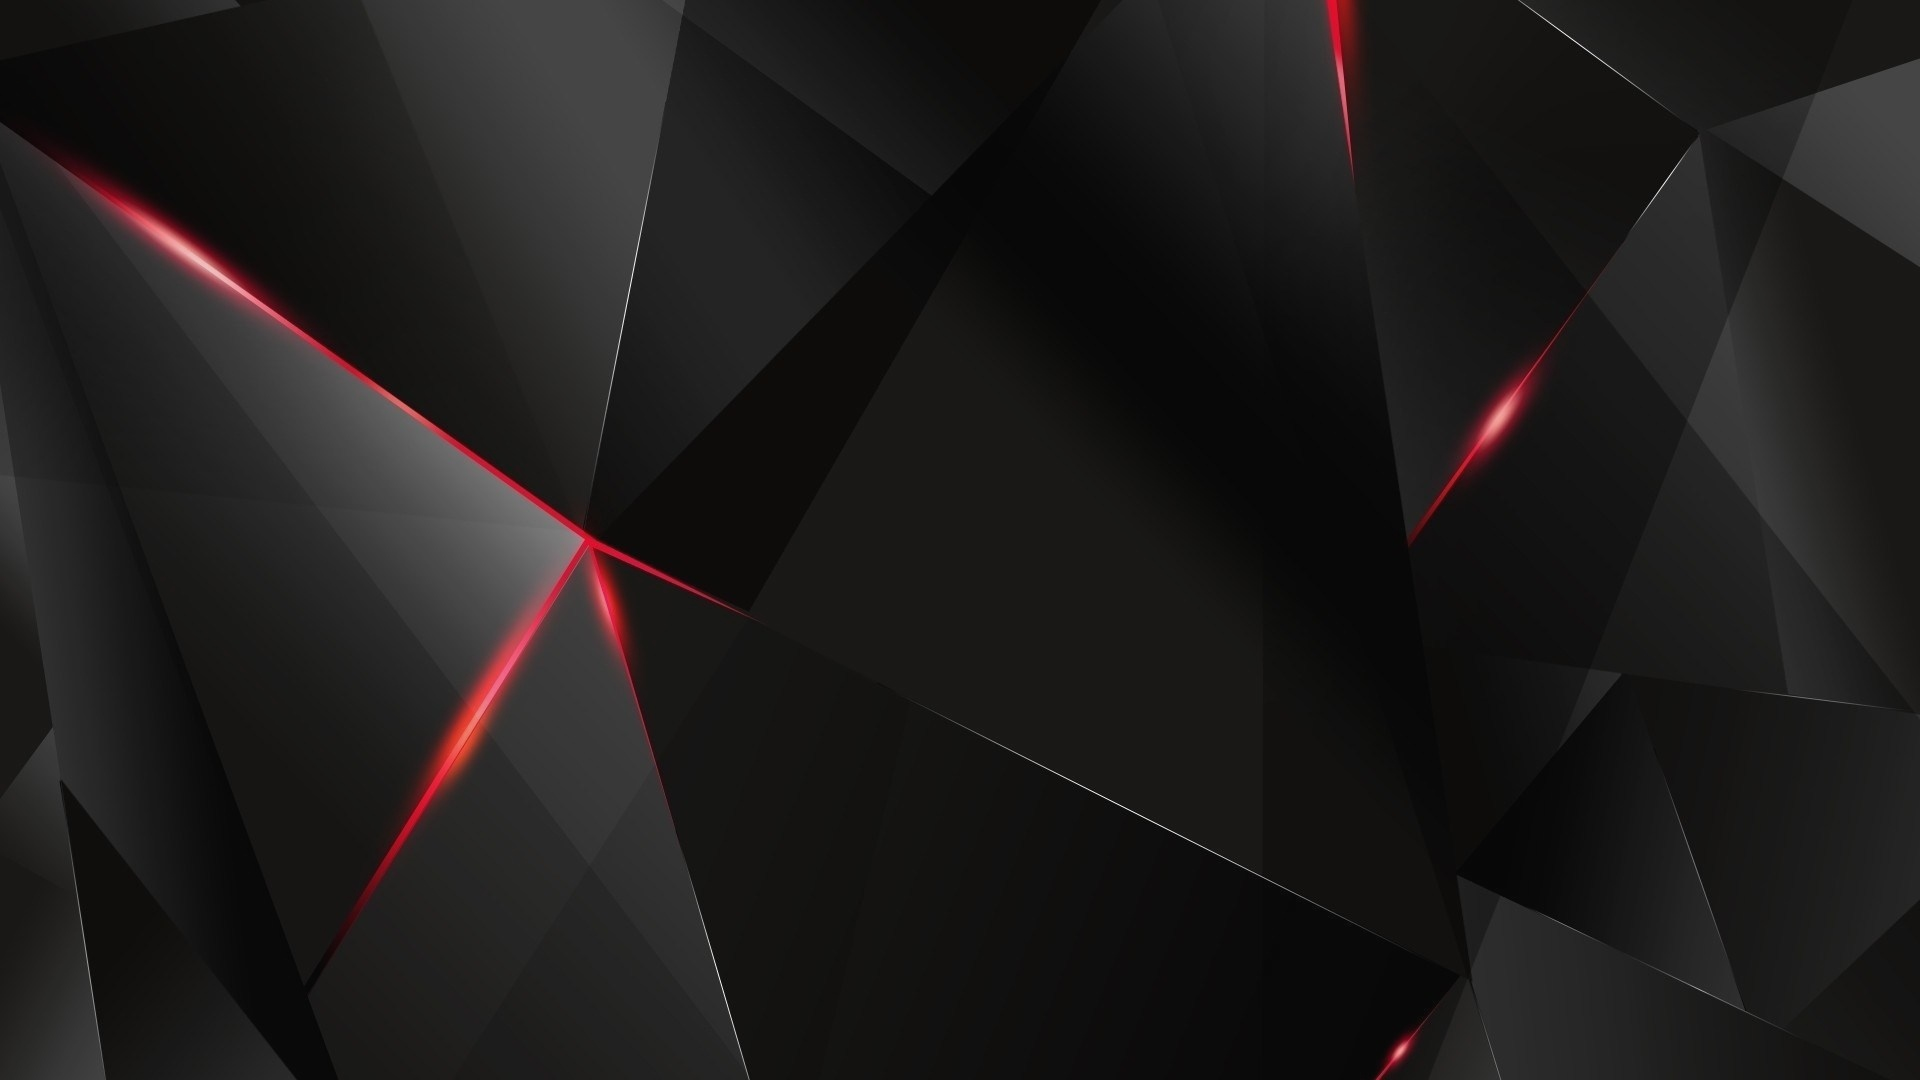 Black Wallpaper Wth Red 3d Effect 4k Black And Red